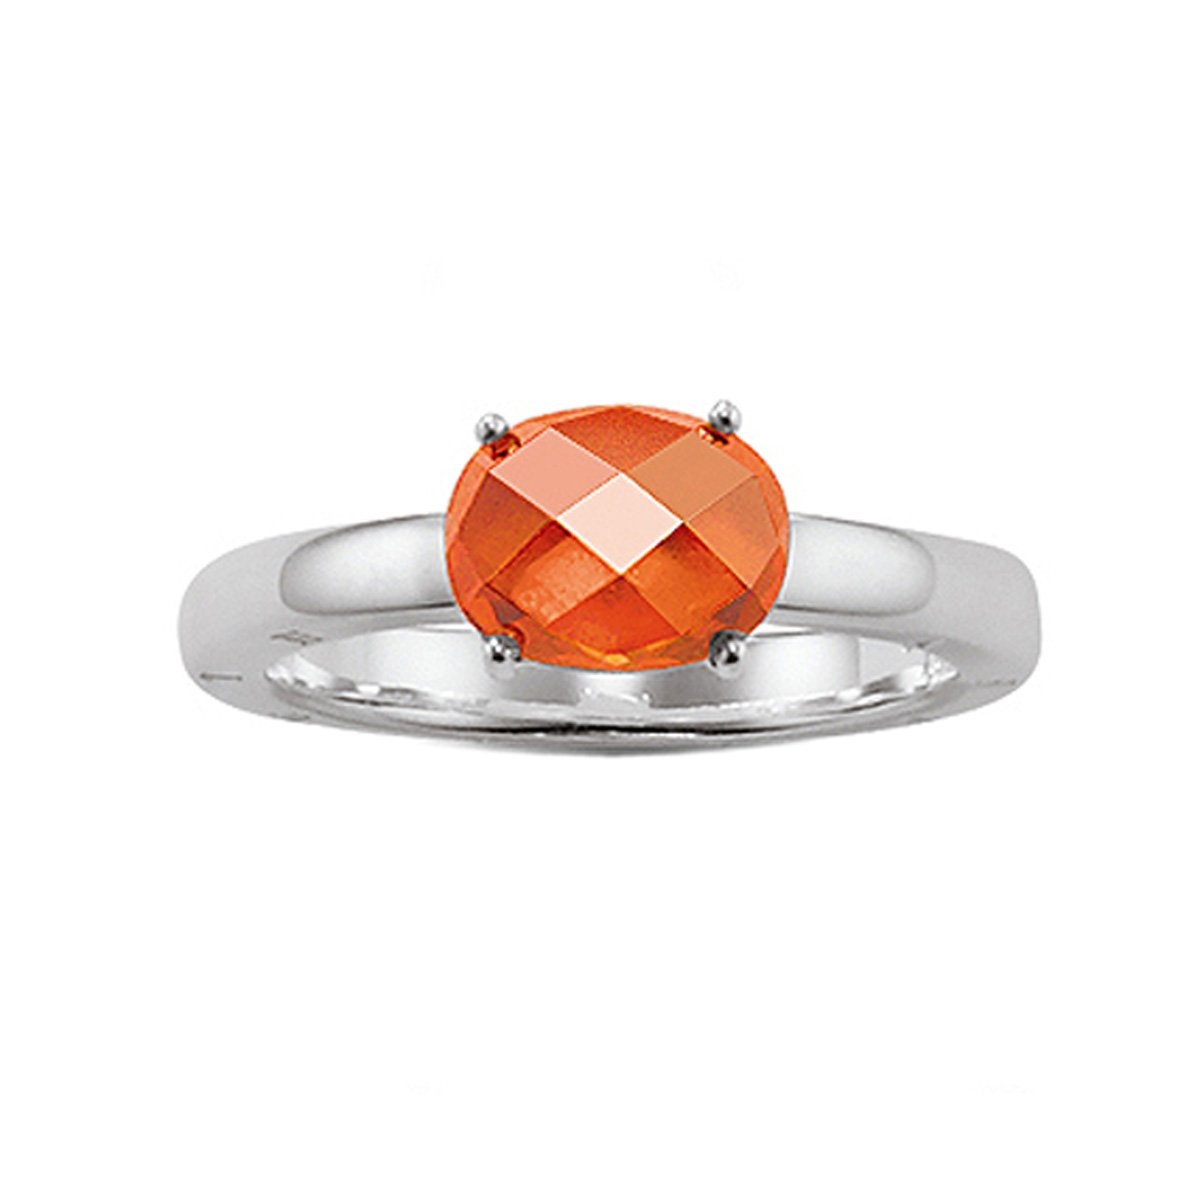 Damen-Ring Seasonal Sterling-Silber Zirkona orange Gr.54 TR1851-051-8-54